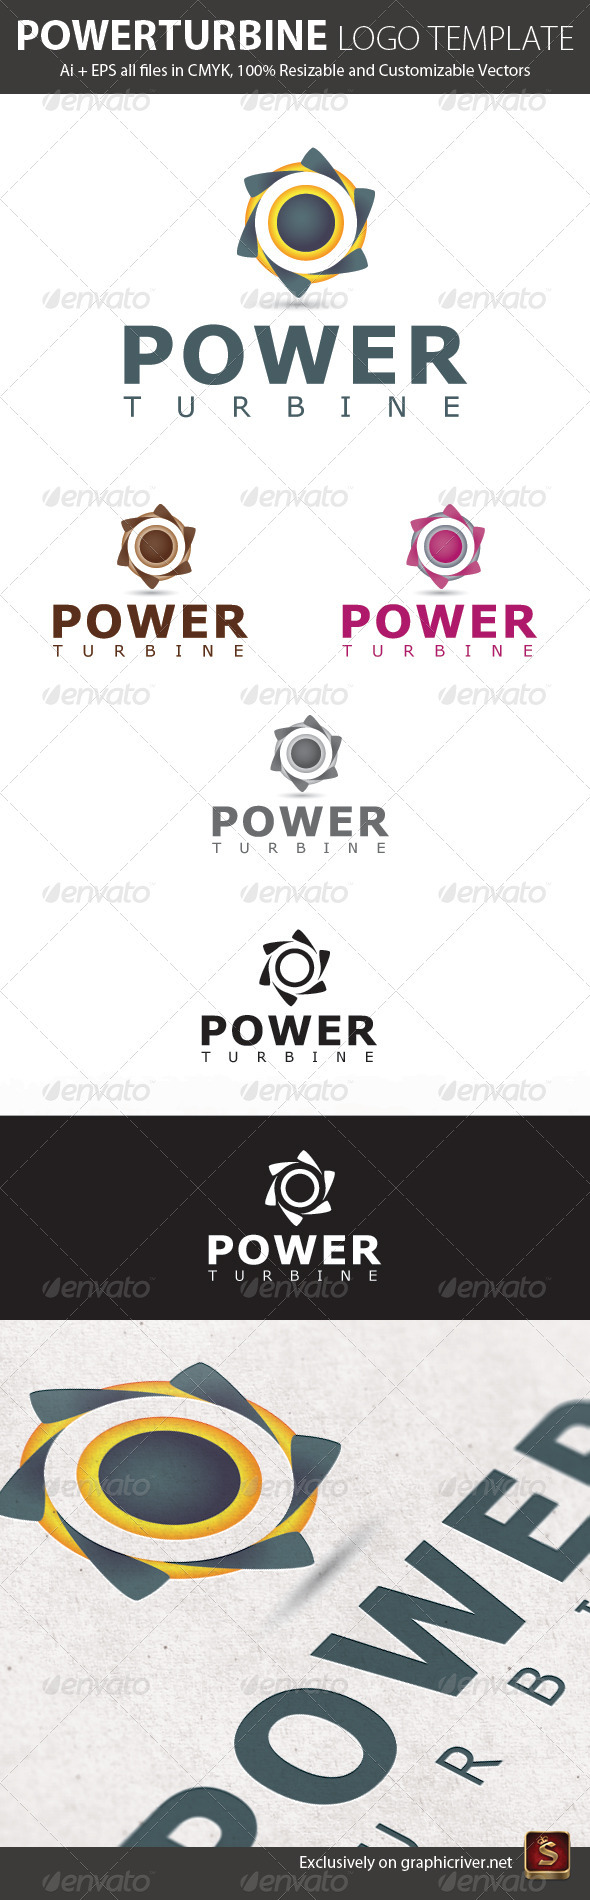 Power Turbine Logo Template - Vector Abstract